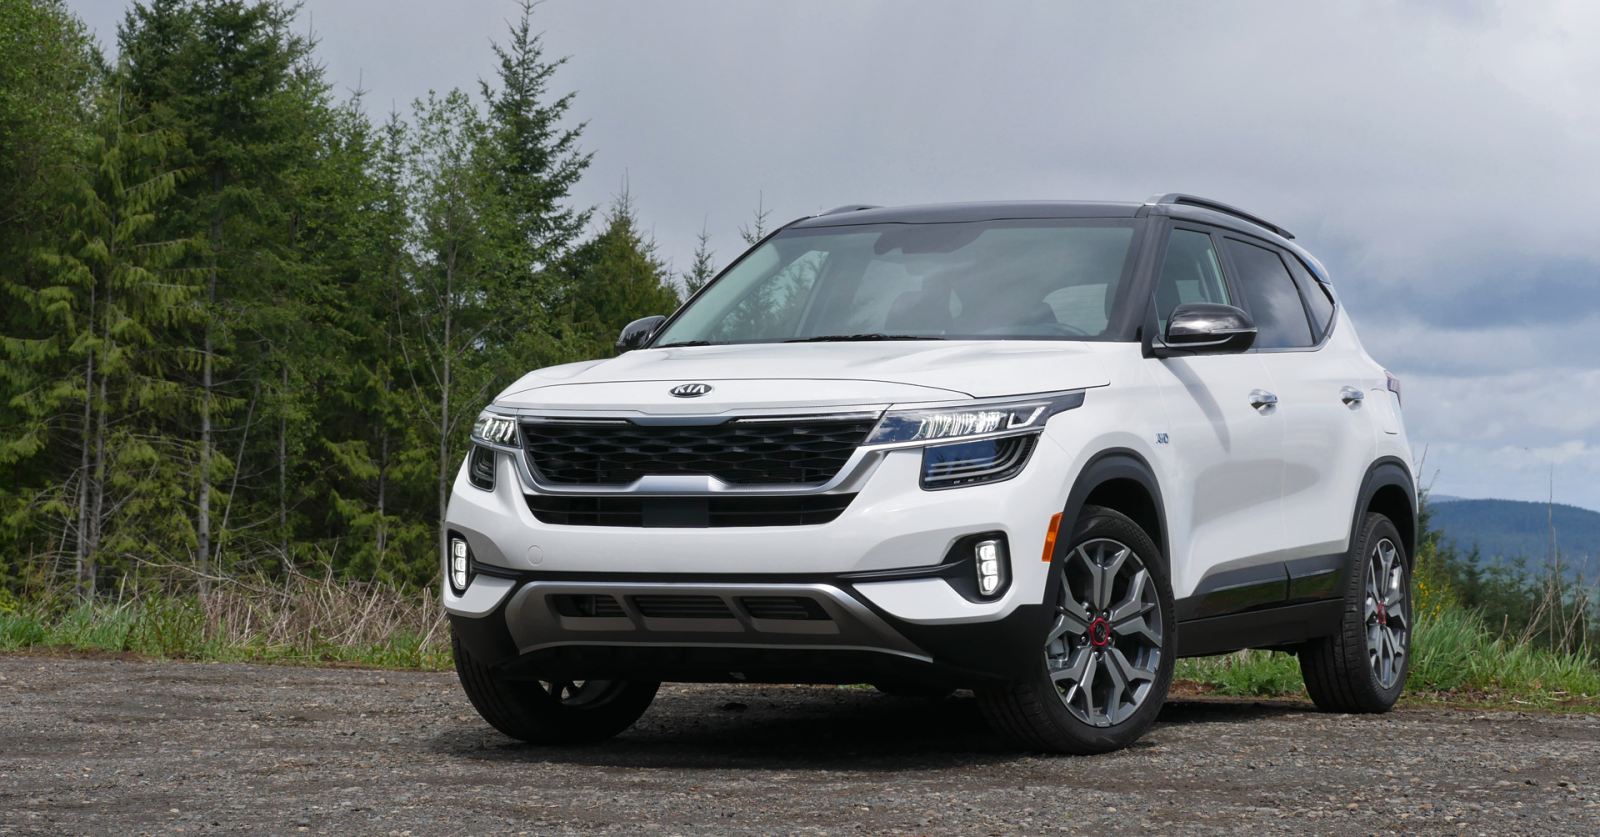 Kia Seltos - A Smaller Kia SUV is on the Way